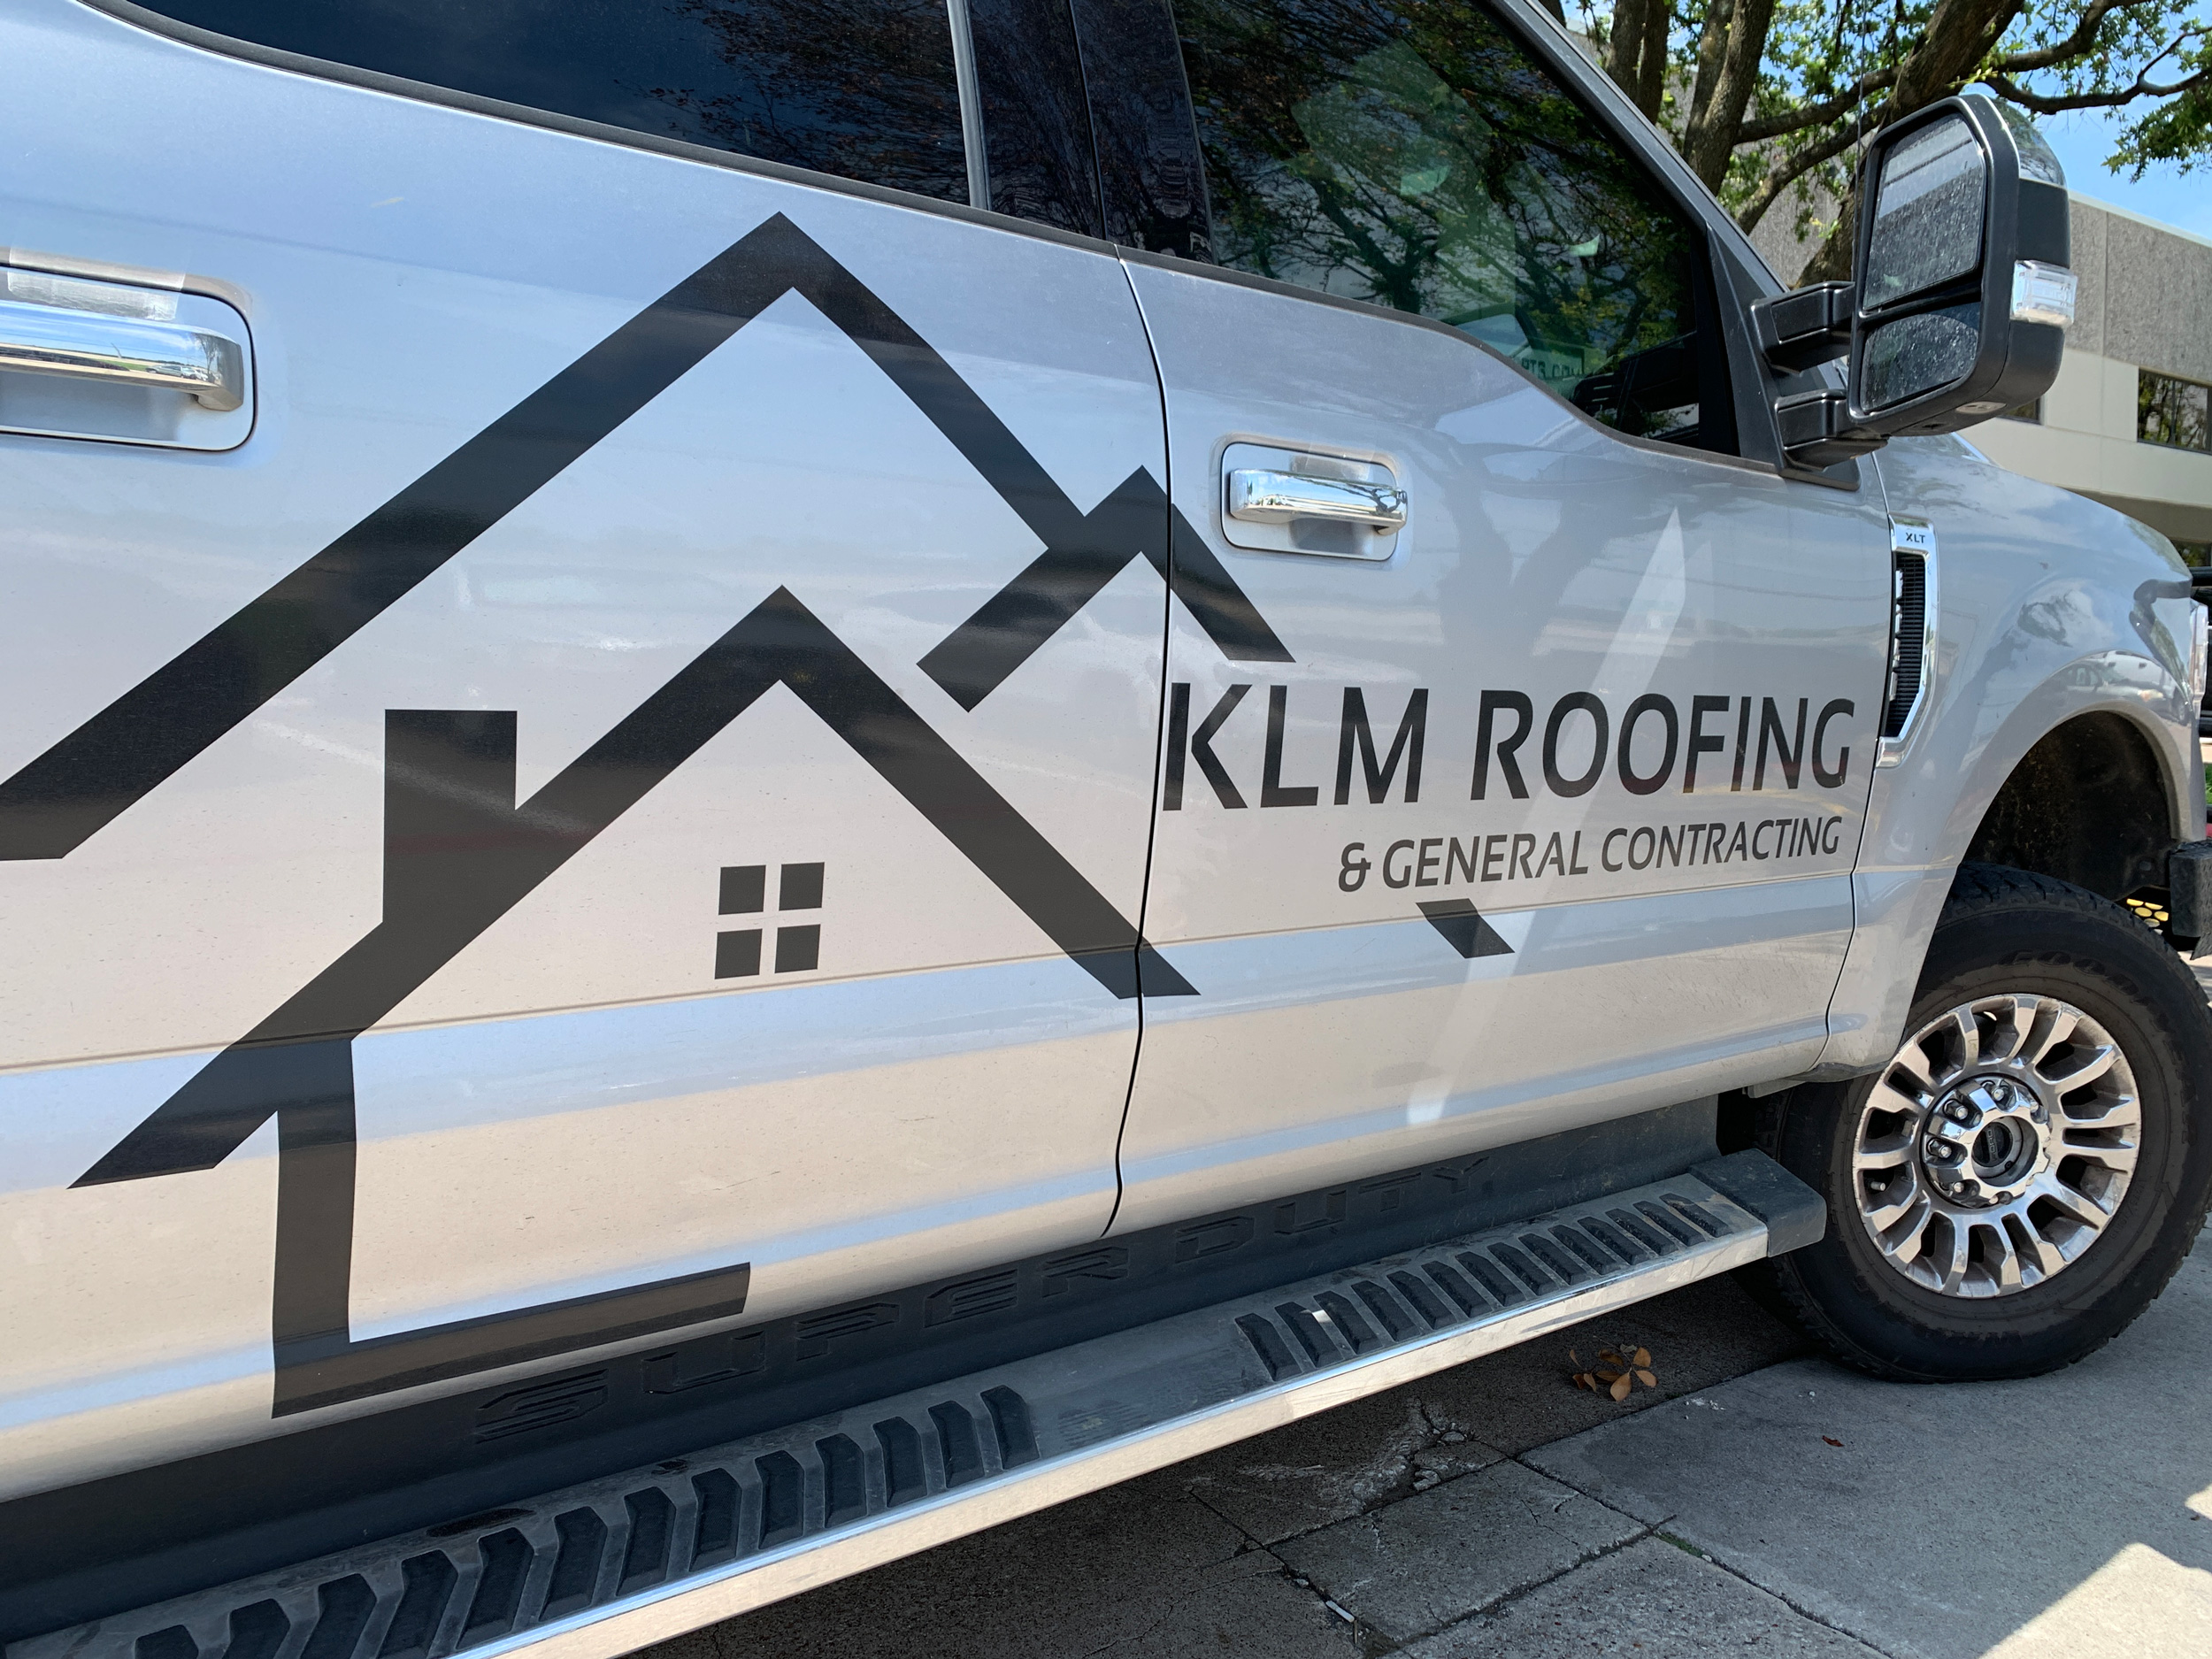 Side angle view of silver truck with KLM Roofing logo in black on the side.